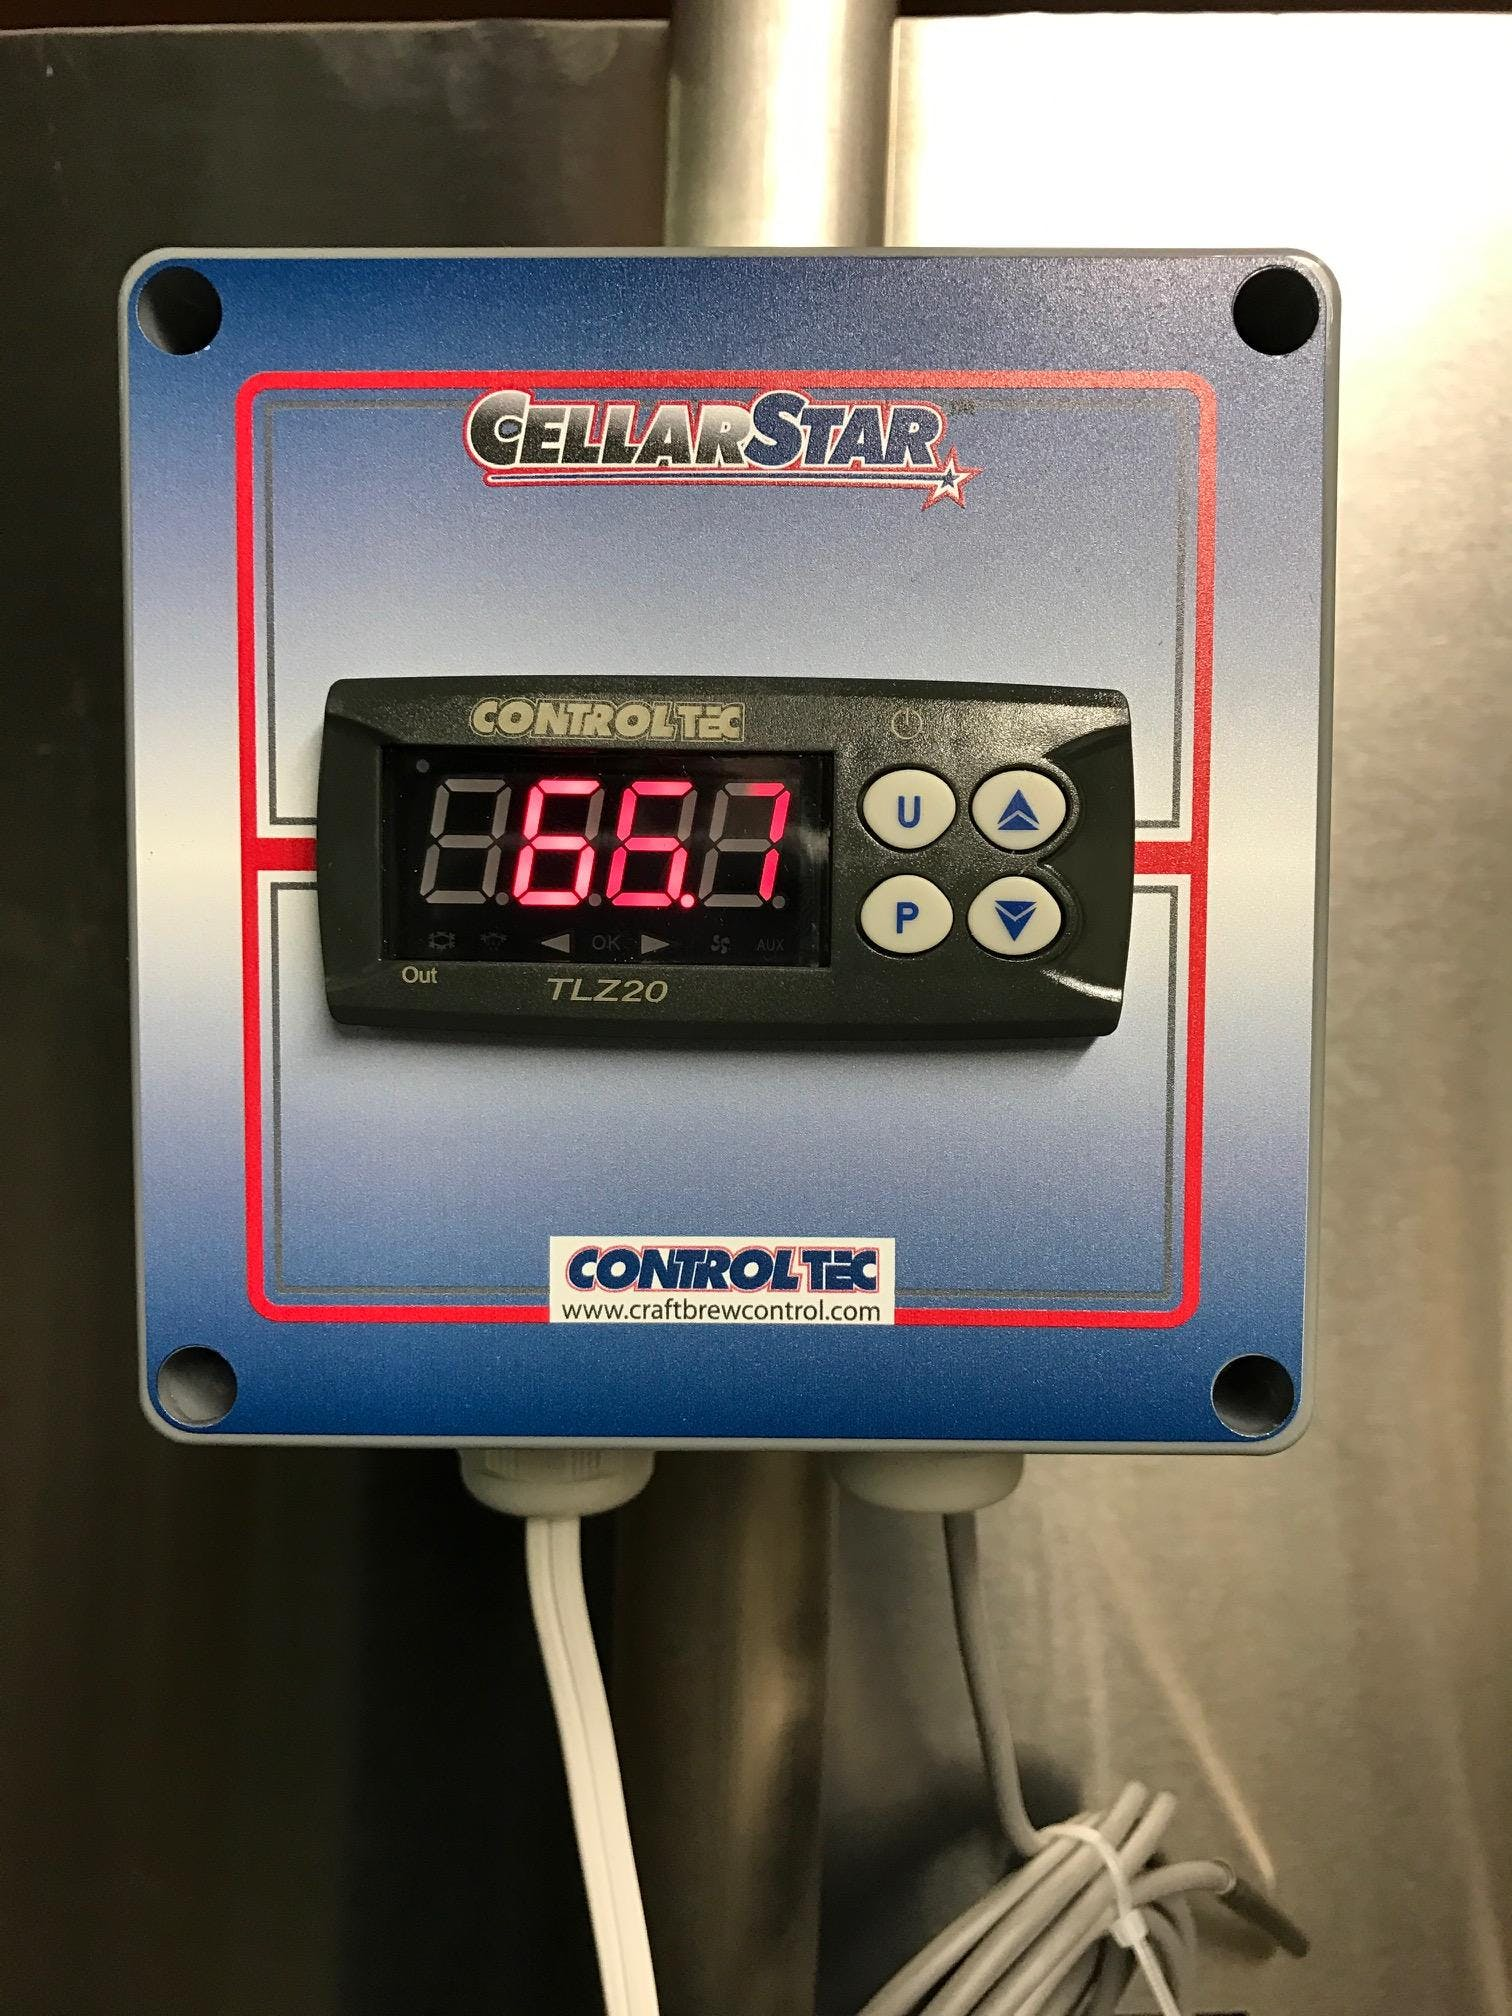 CellarStar - economy tank mounted control - sold by ControlTec, Inc